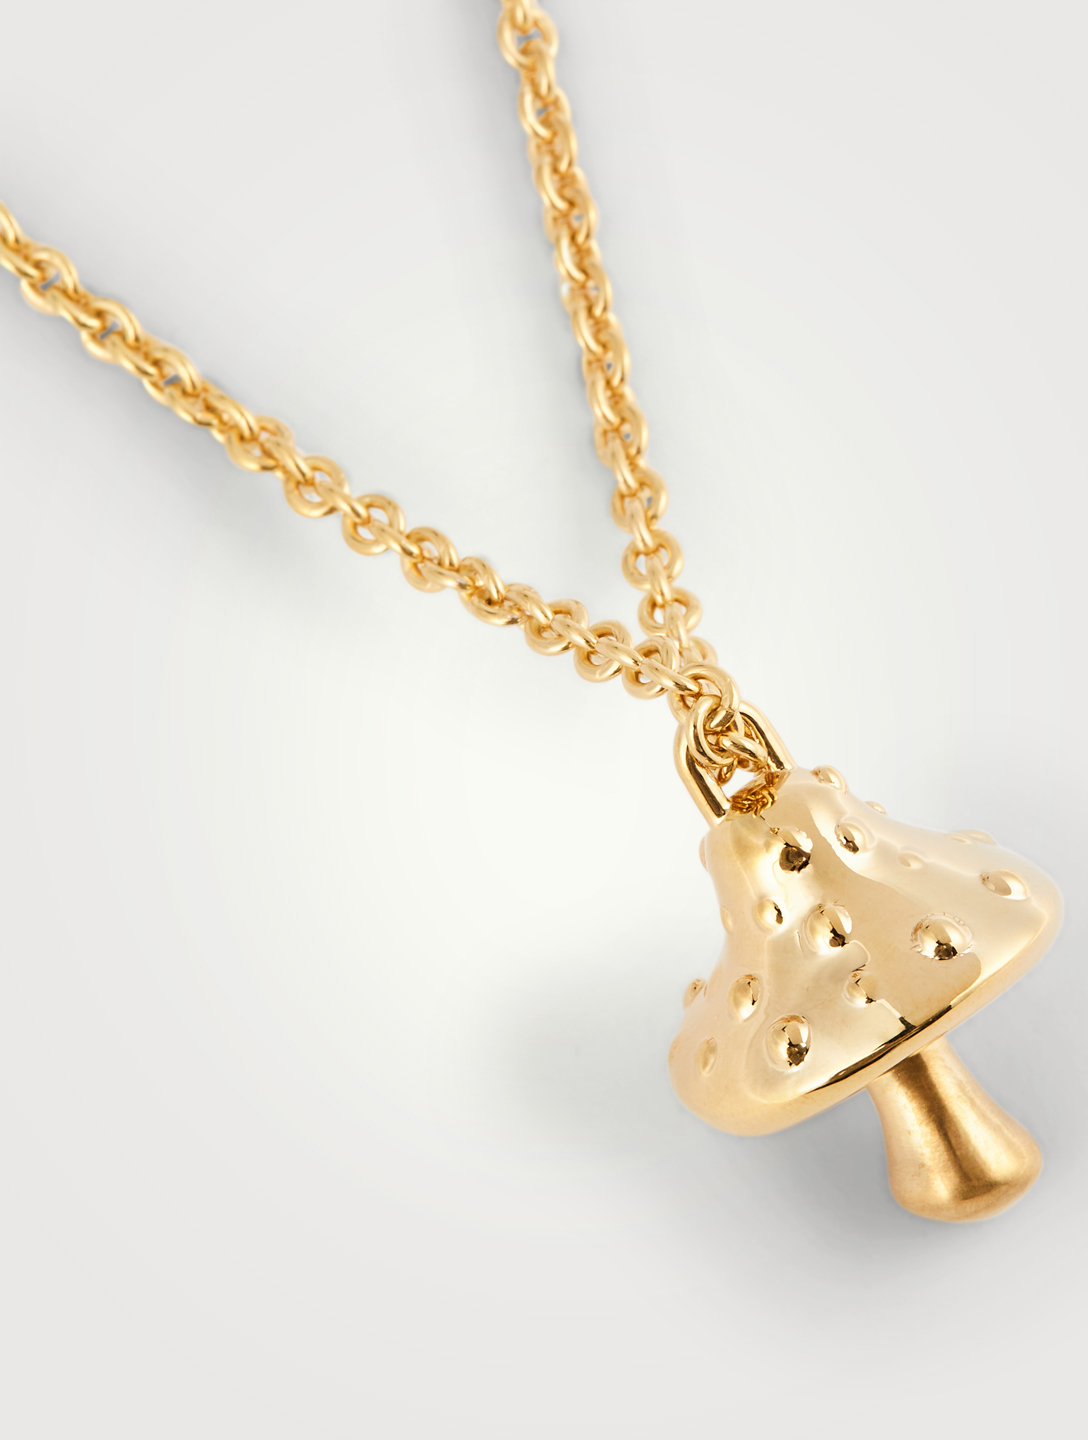 AMBUSH 18K Gold Plated Mushroom Pendant Necklace Women's Metallic